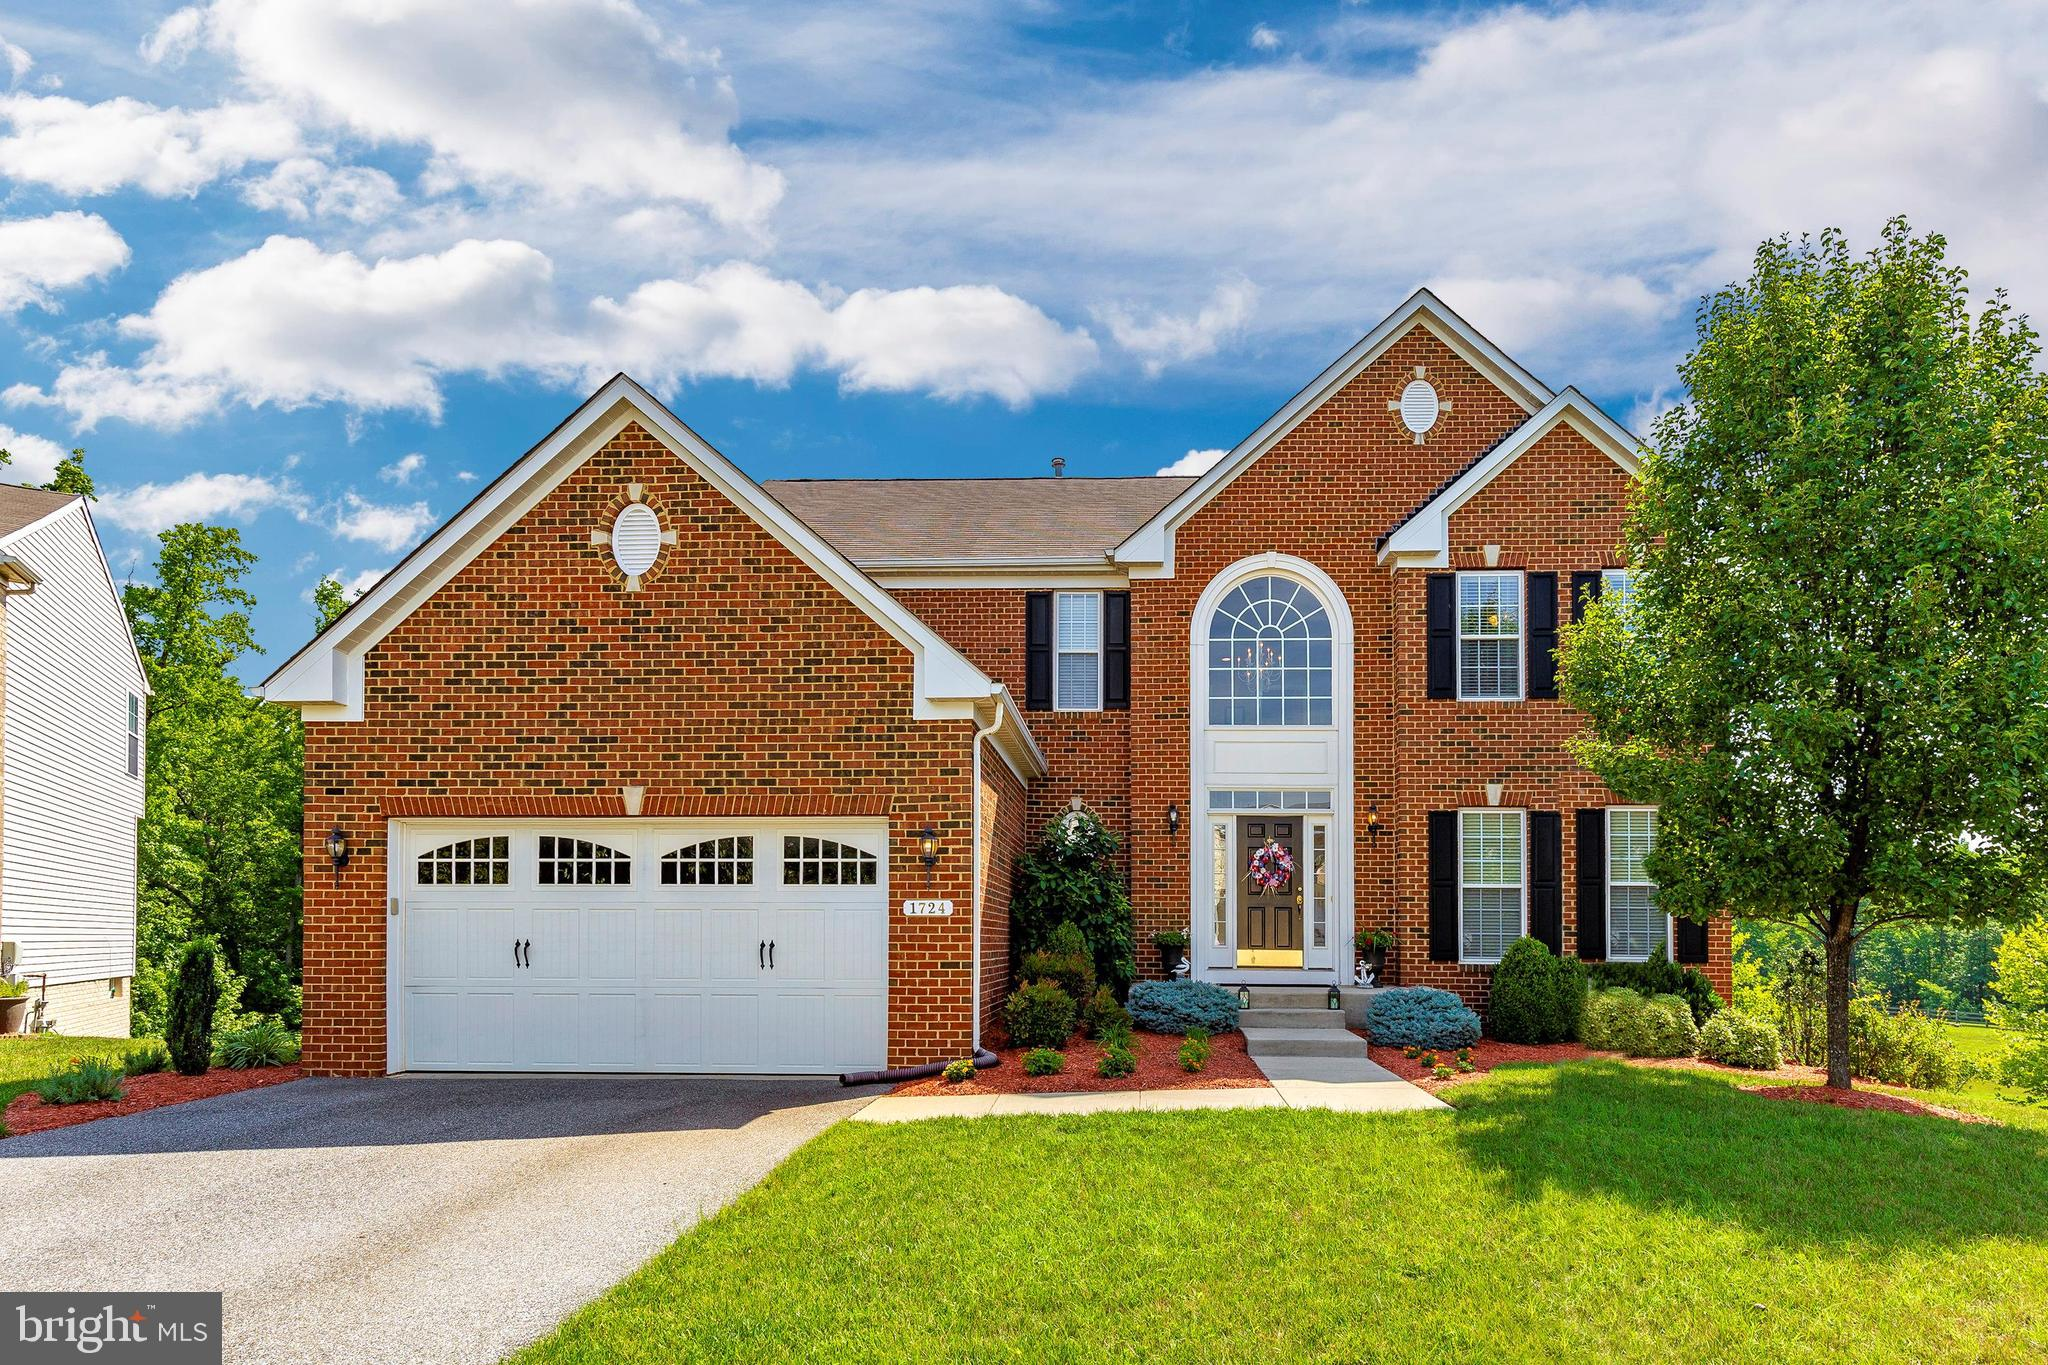 1724 ALLERFORD DRIVE, HANOVER, MD 21076